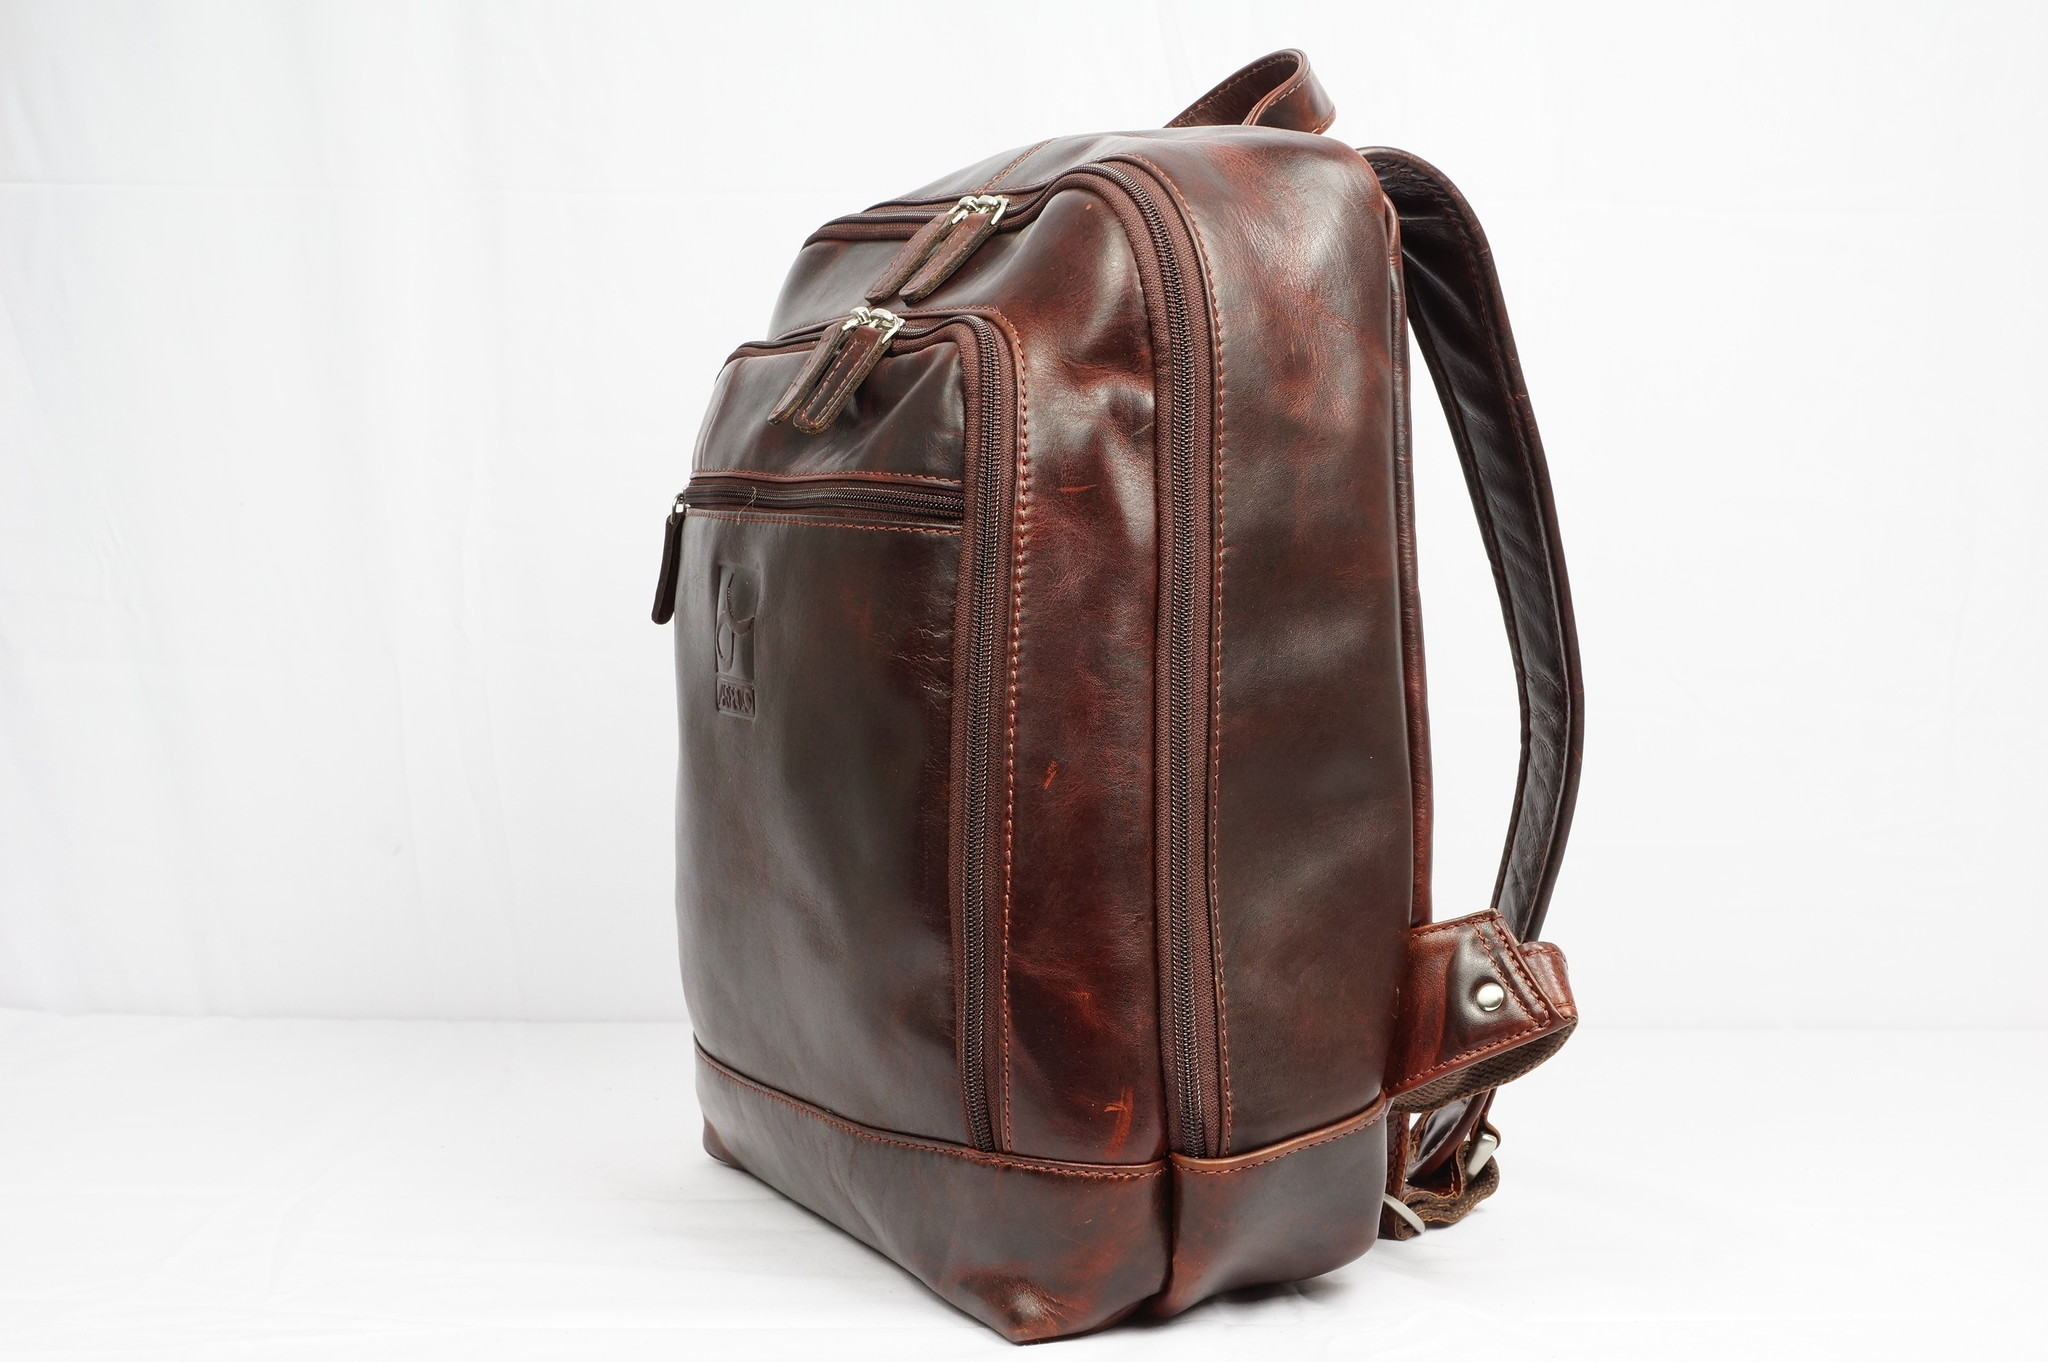 Arpello Old School back pack